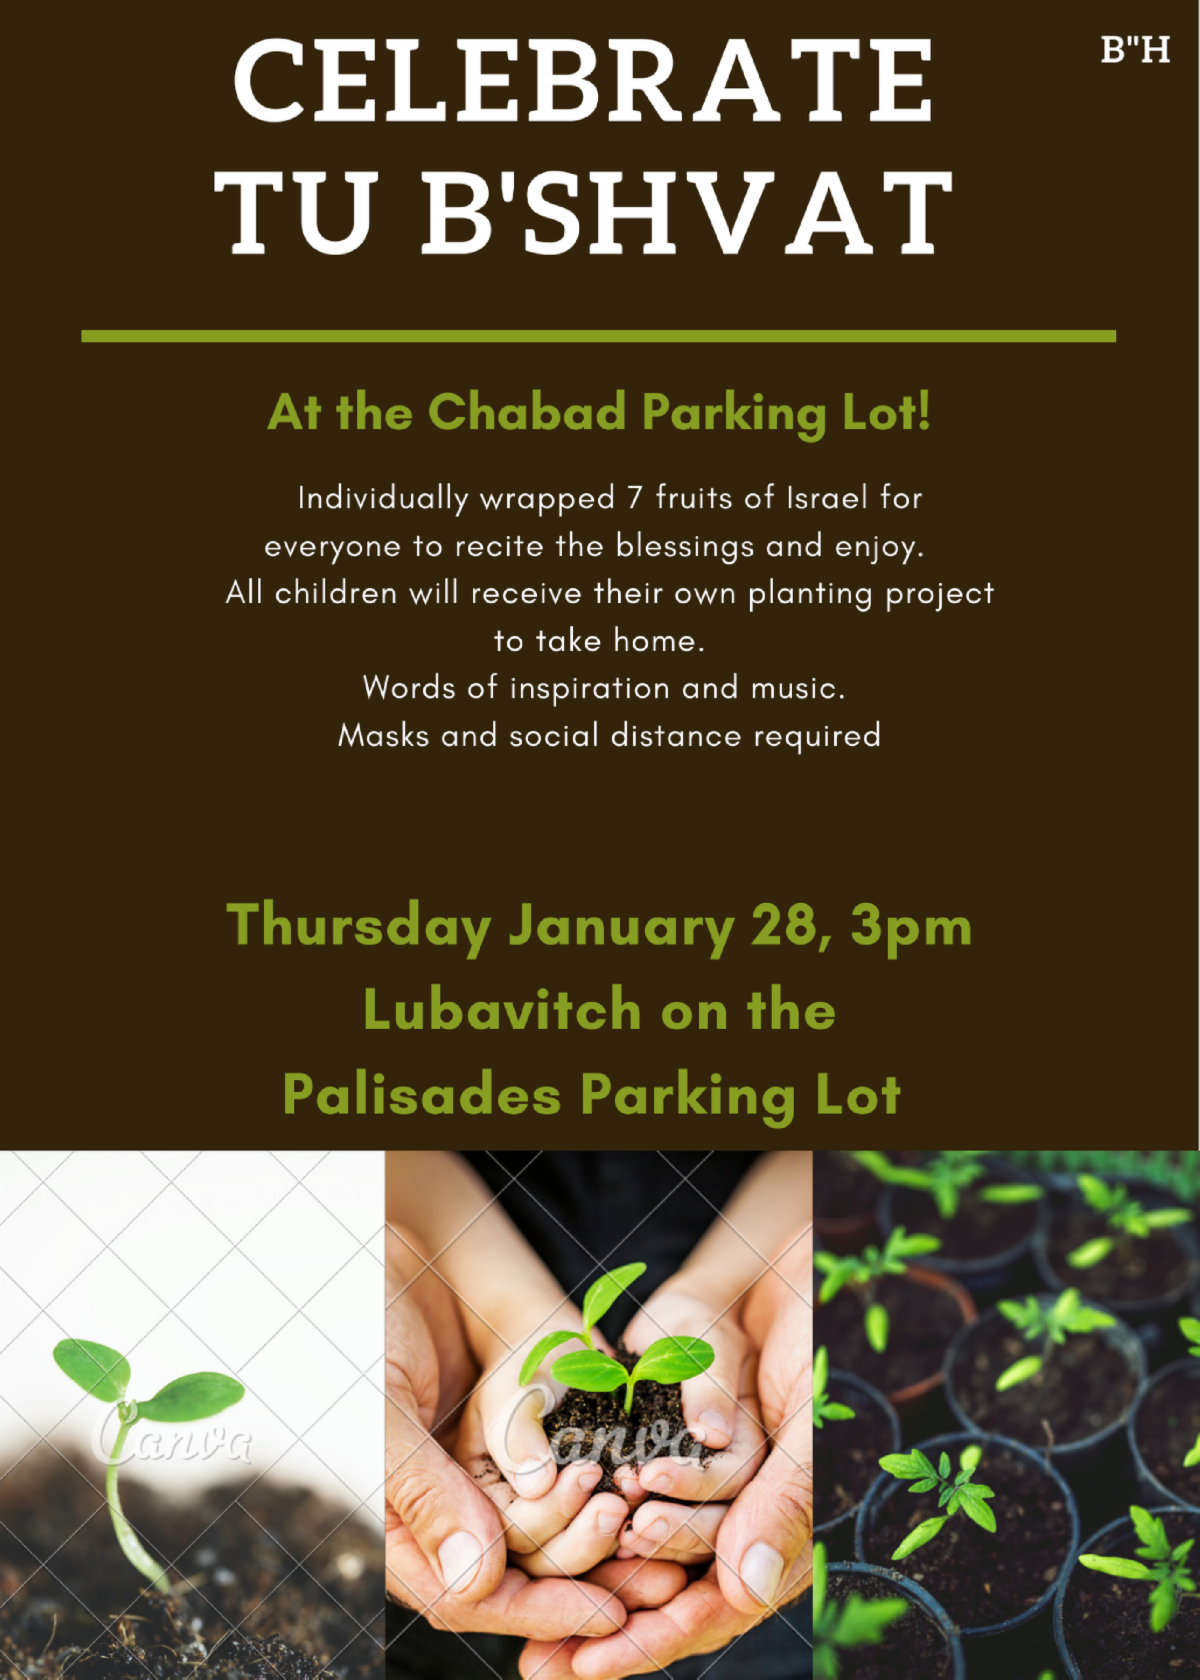 Tu bishvat in lot.png